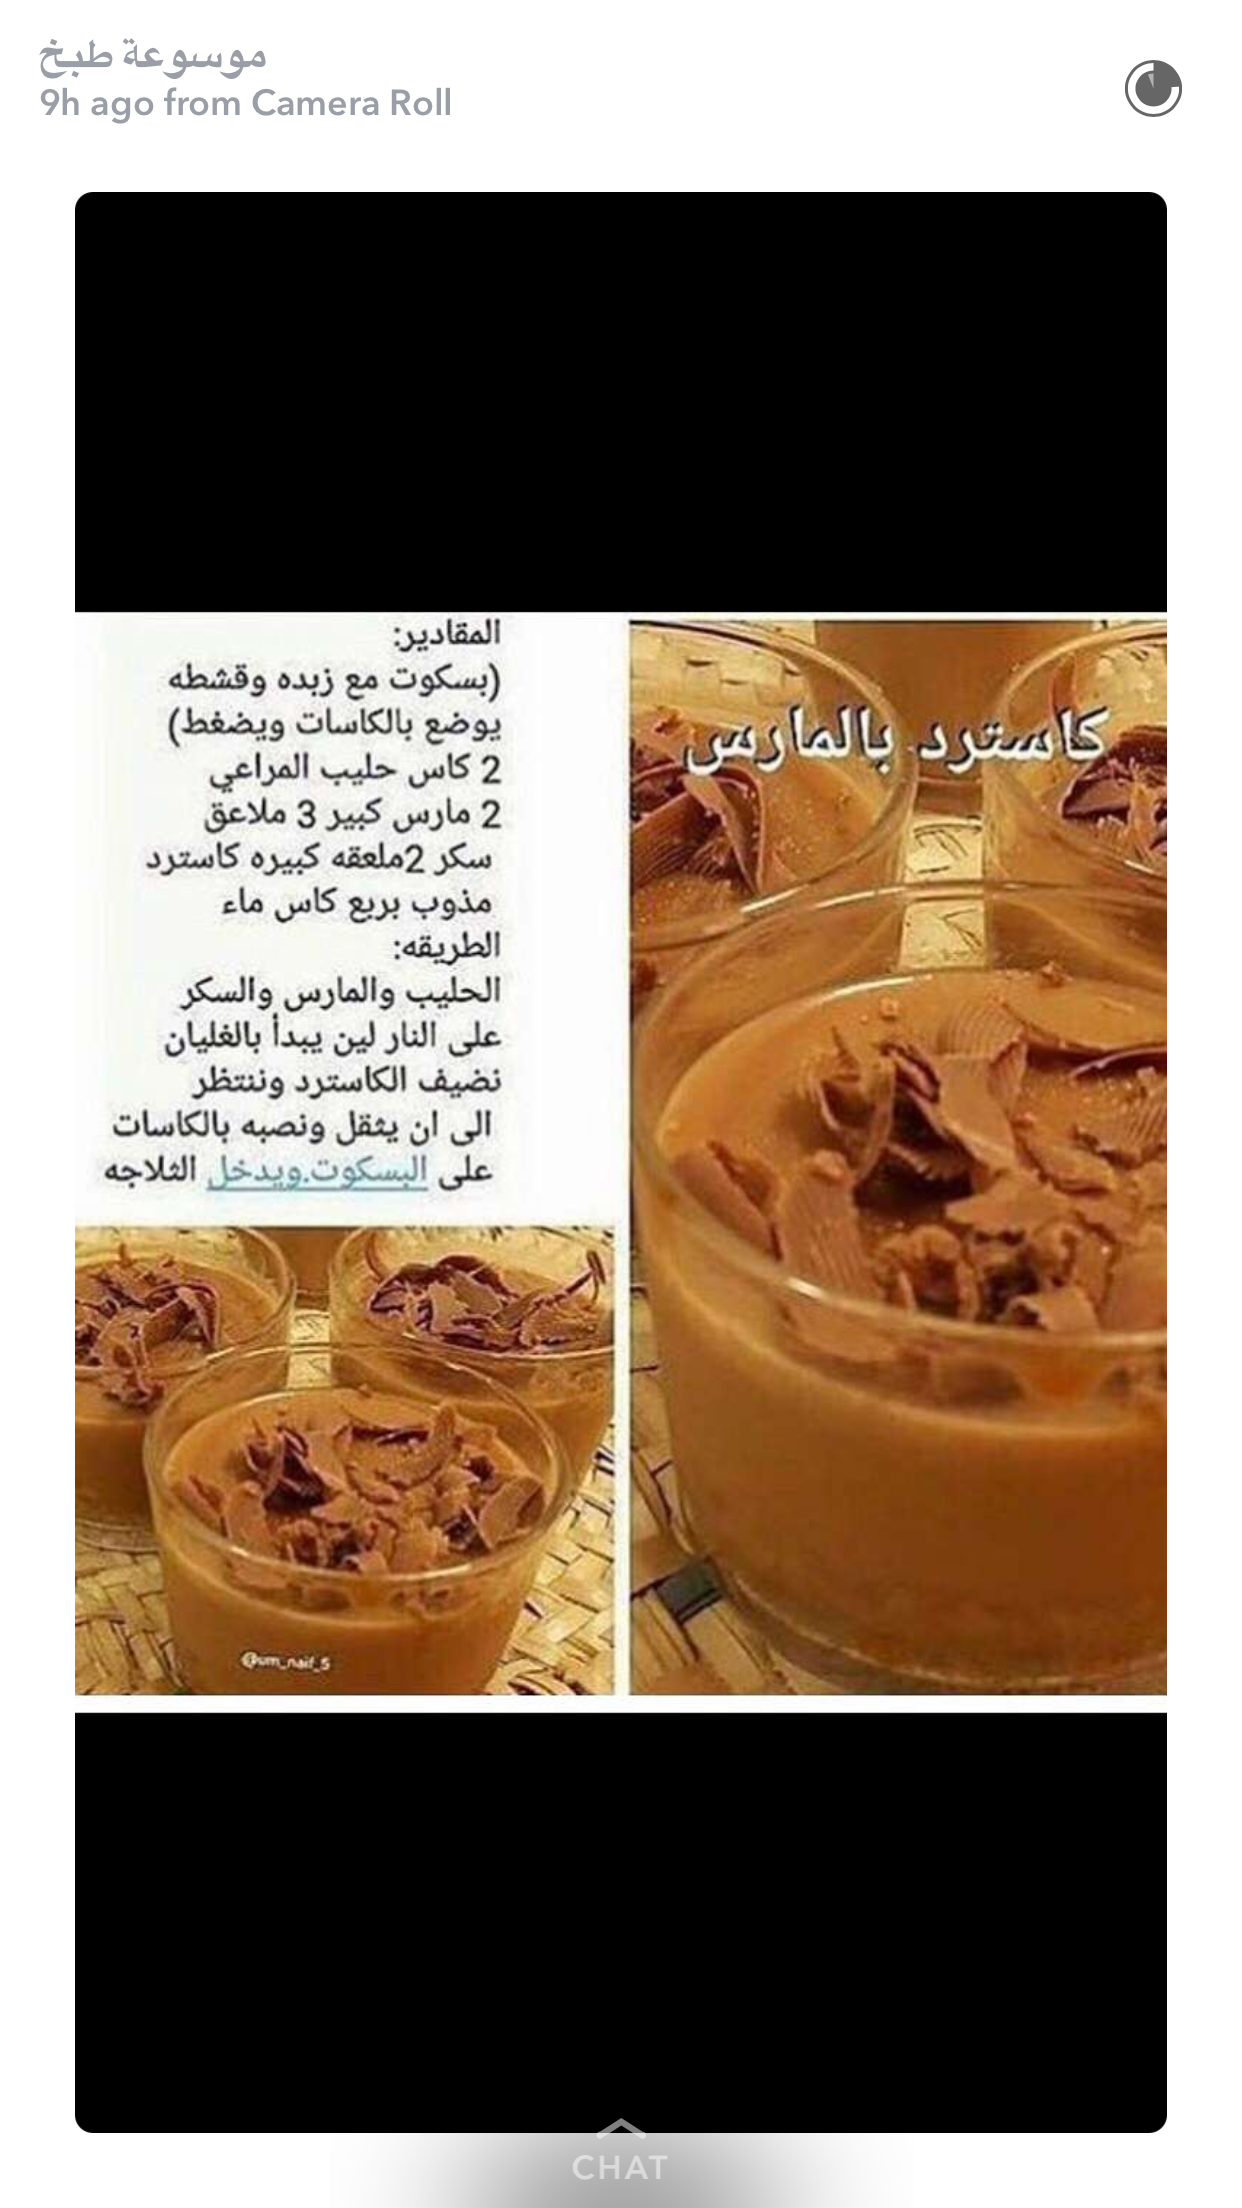 Pin By Bana On Food And Drink Yummy Food Dessert Save Food Cooking Recipes Desserts